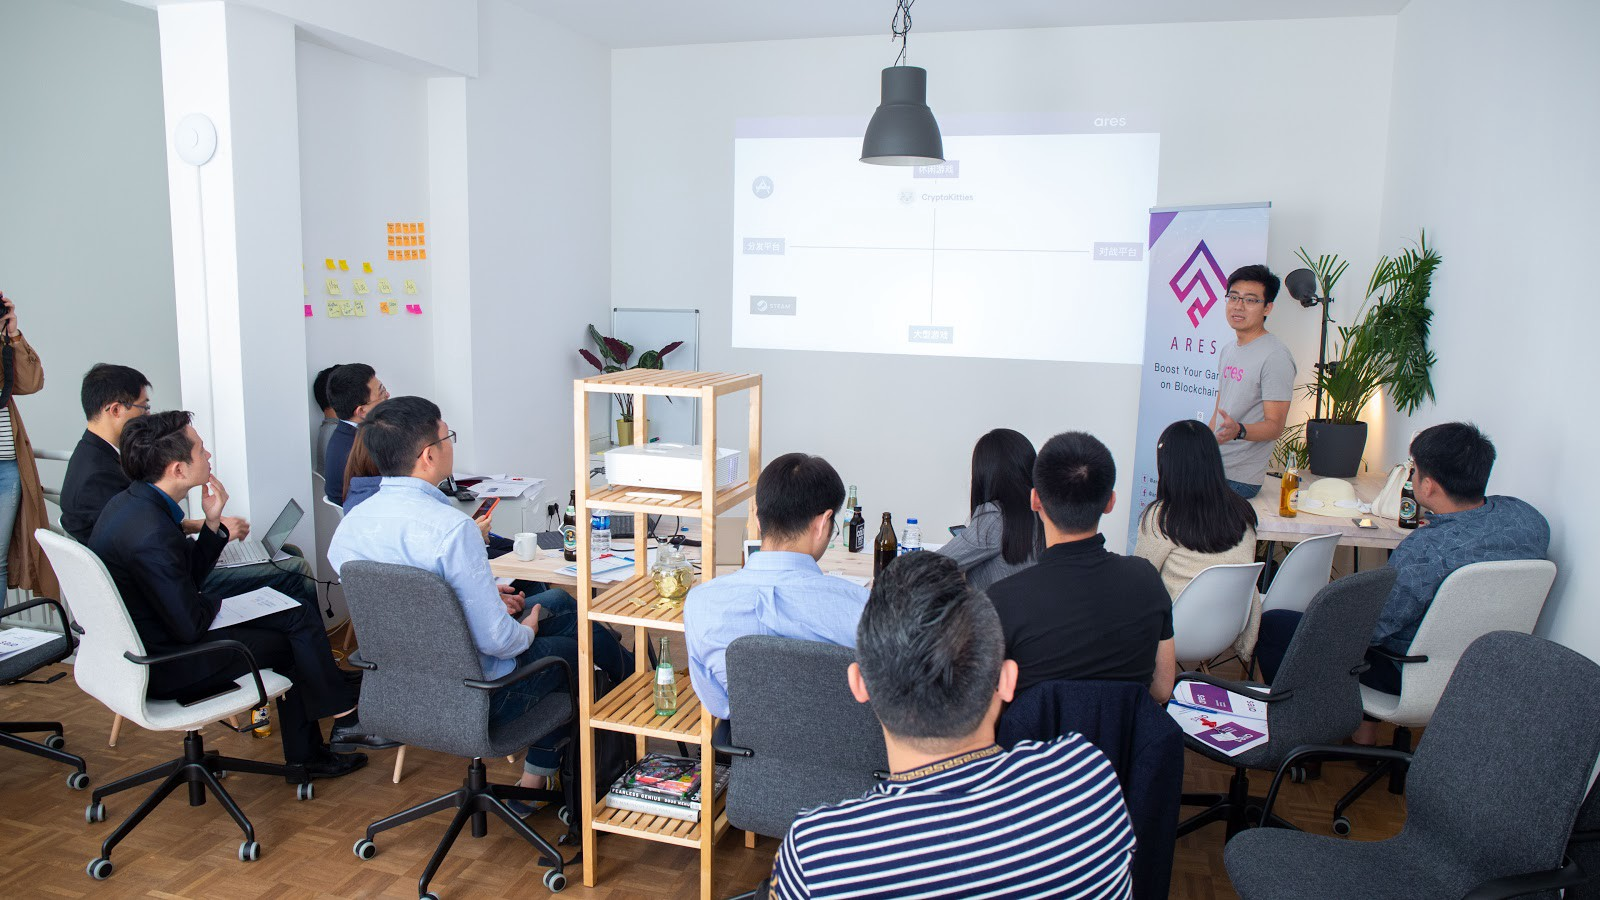 Ares Gmbh international investor delegation visited ares tech upon ares